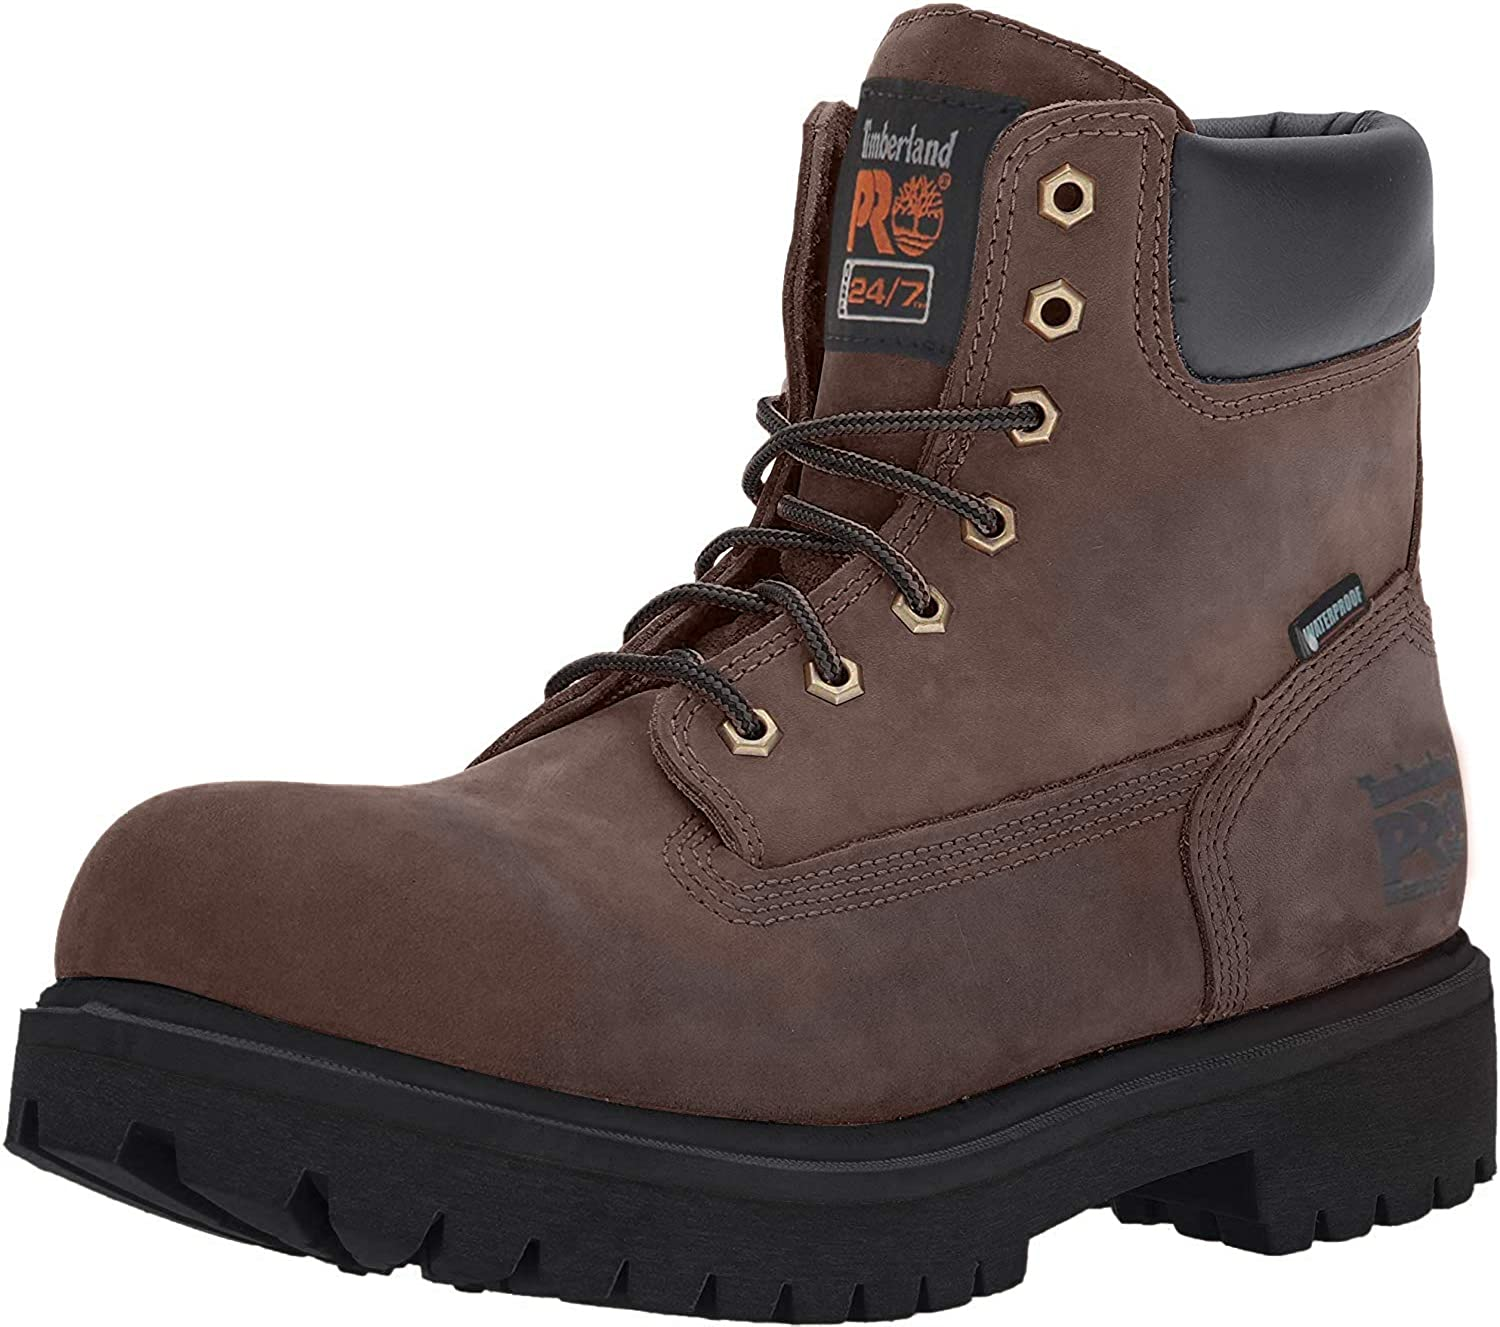 """Timberland PRO Men's 38021 Direct Attach 6"""" Steel-Toe Boot,Brown,13 W"""